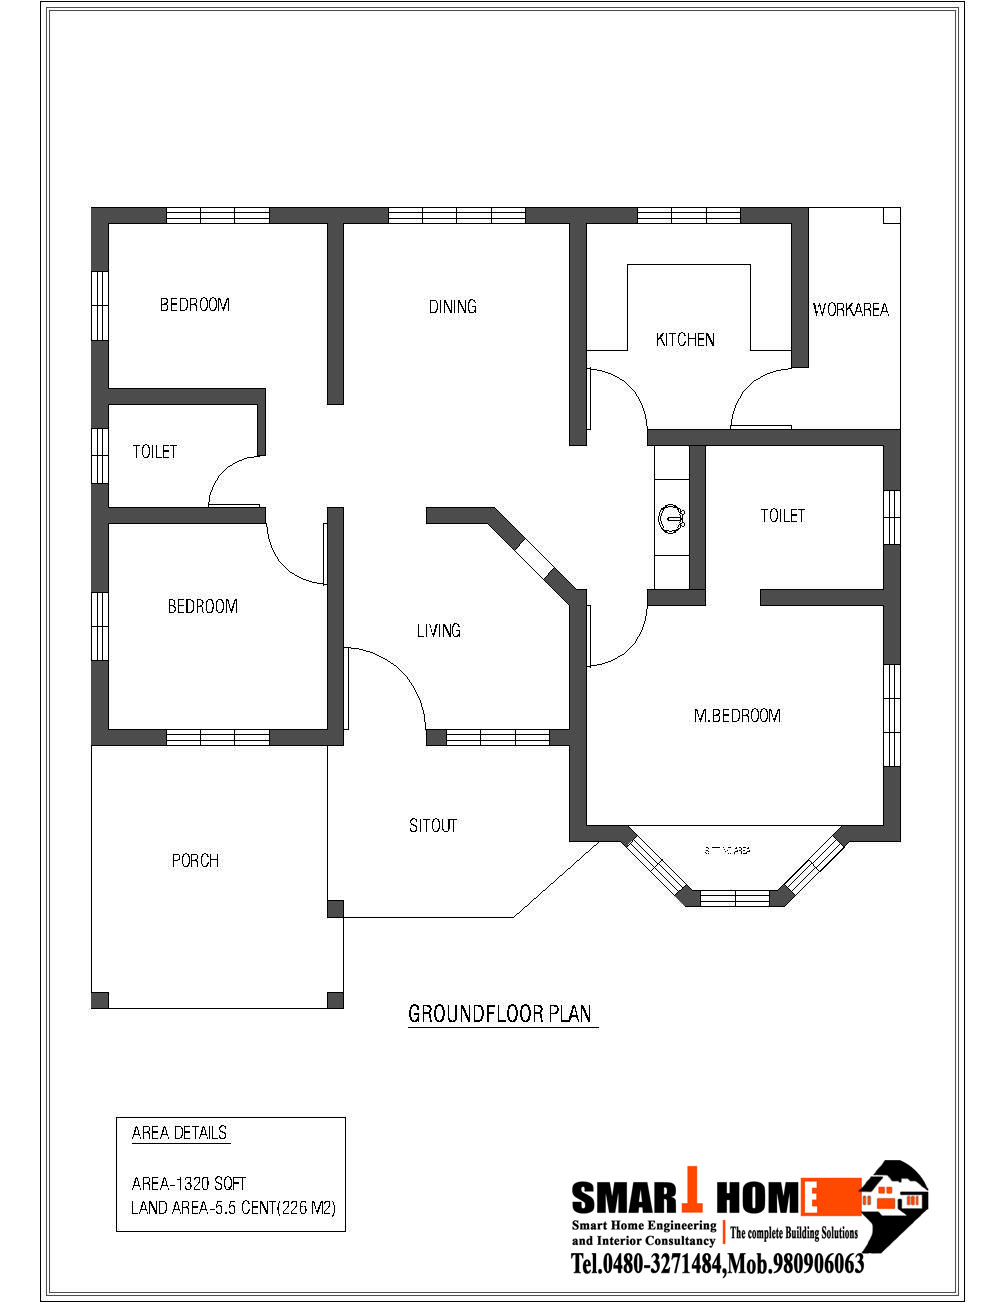 3 Bedroom House Plans Floor Plans